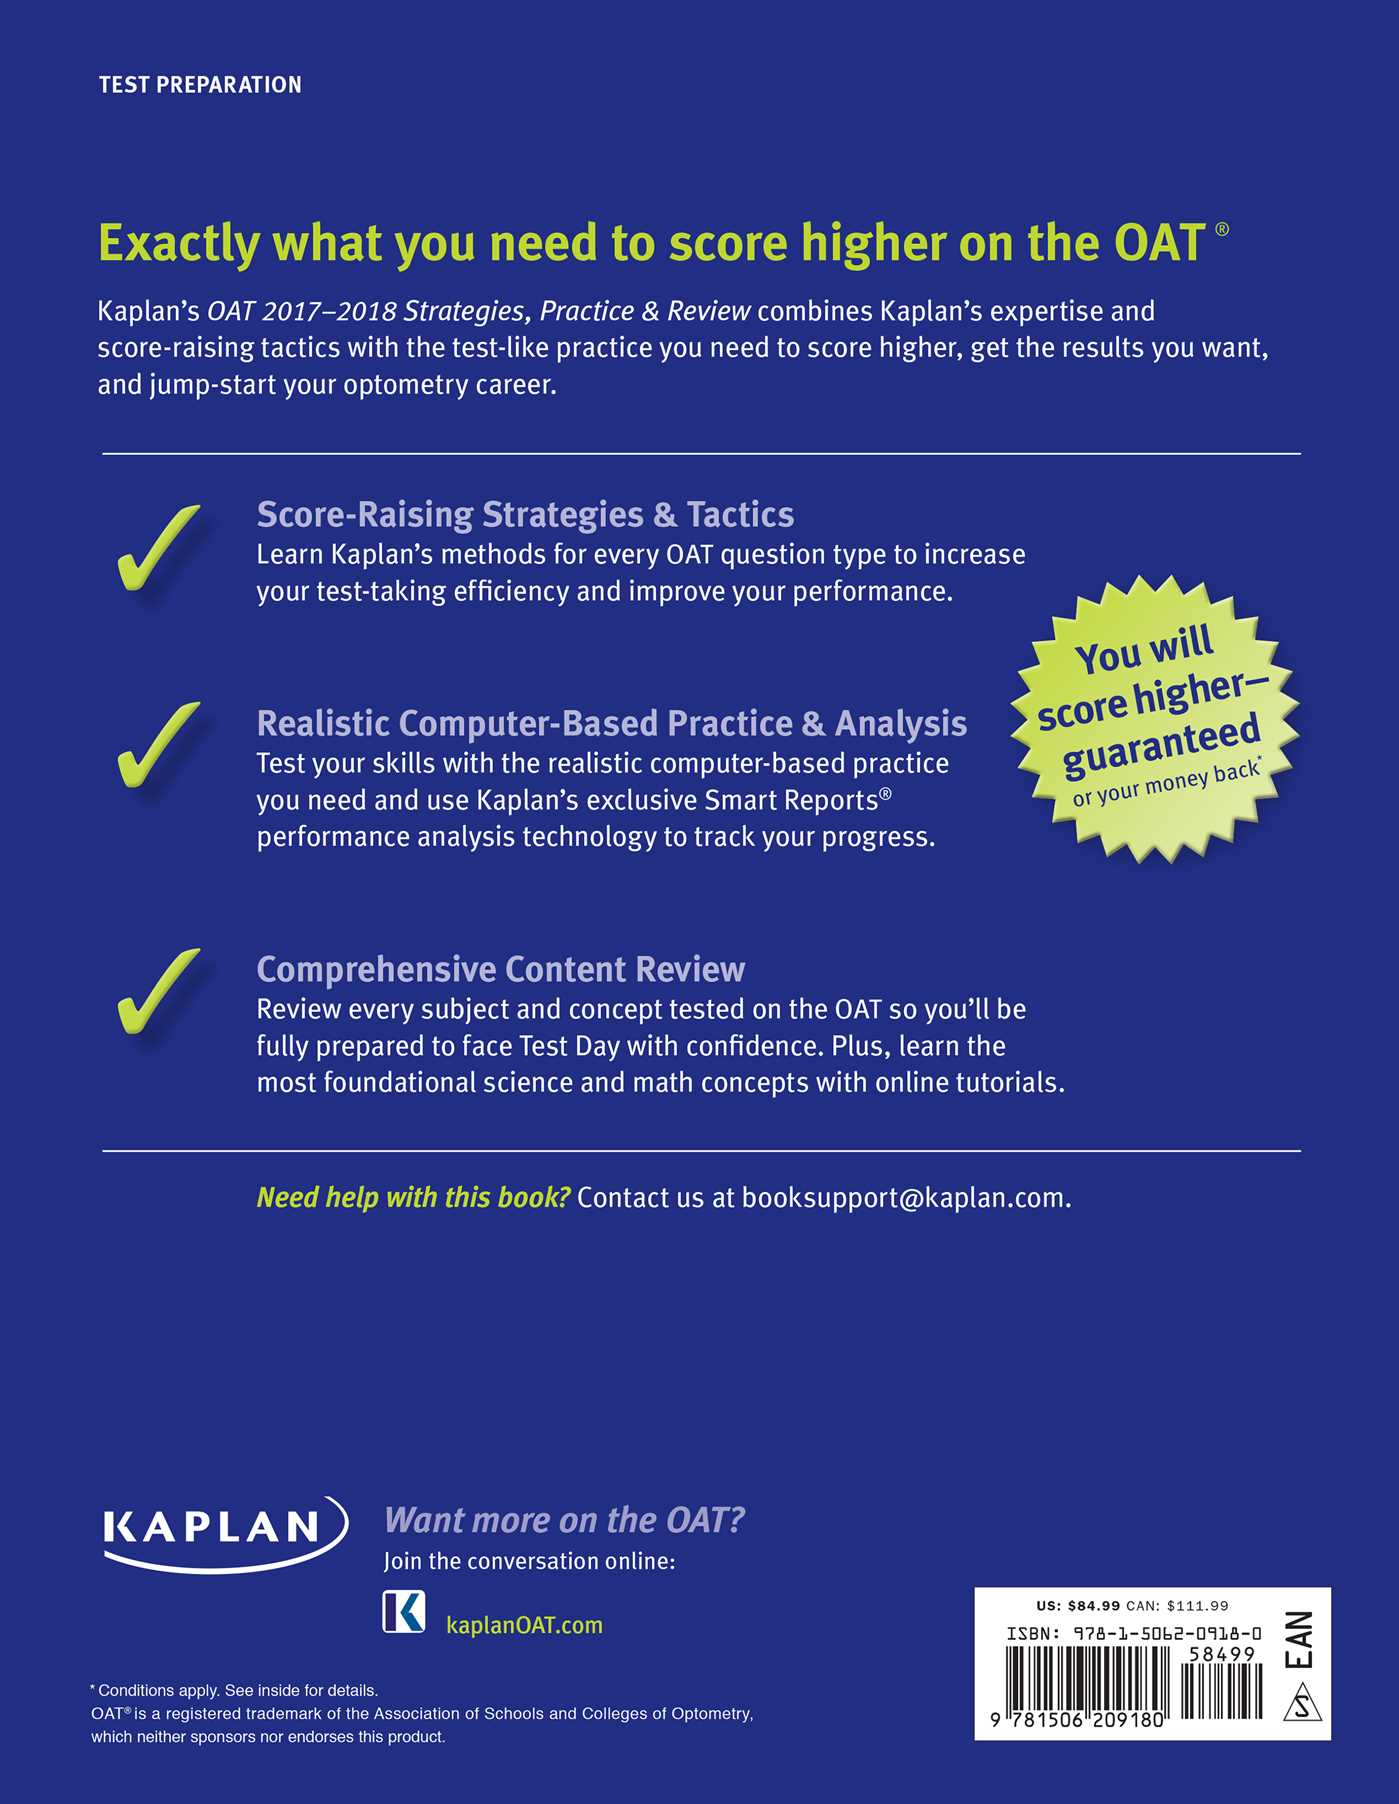 Oat 2017 2018 strategies practice review with 2 practice tests oat 2017 2018 strategies practice review with 2 practice tests 9781506209180 hr back malvernweather Gallery